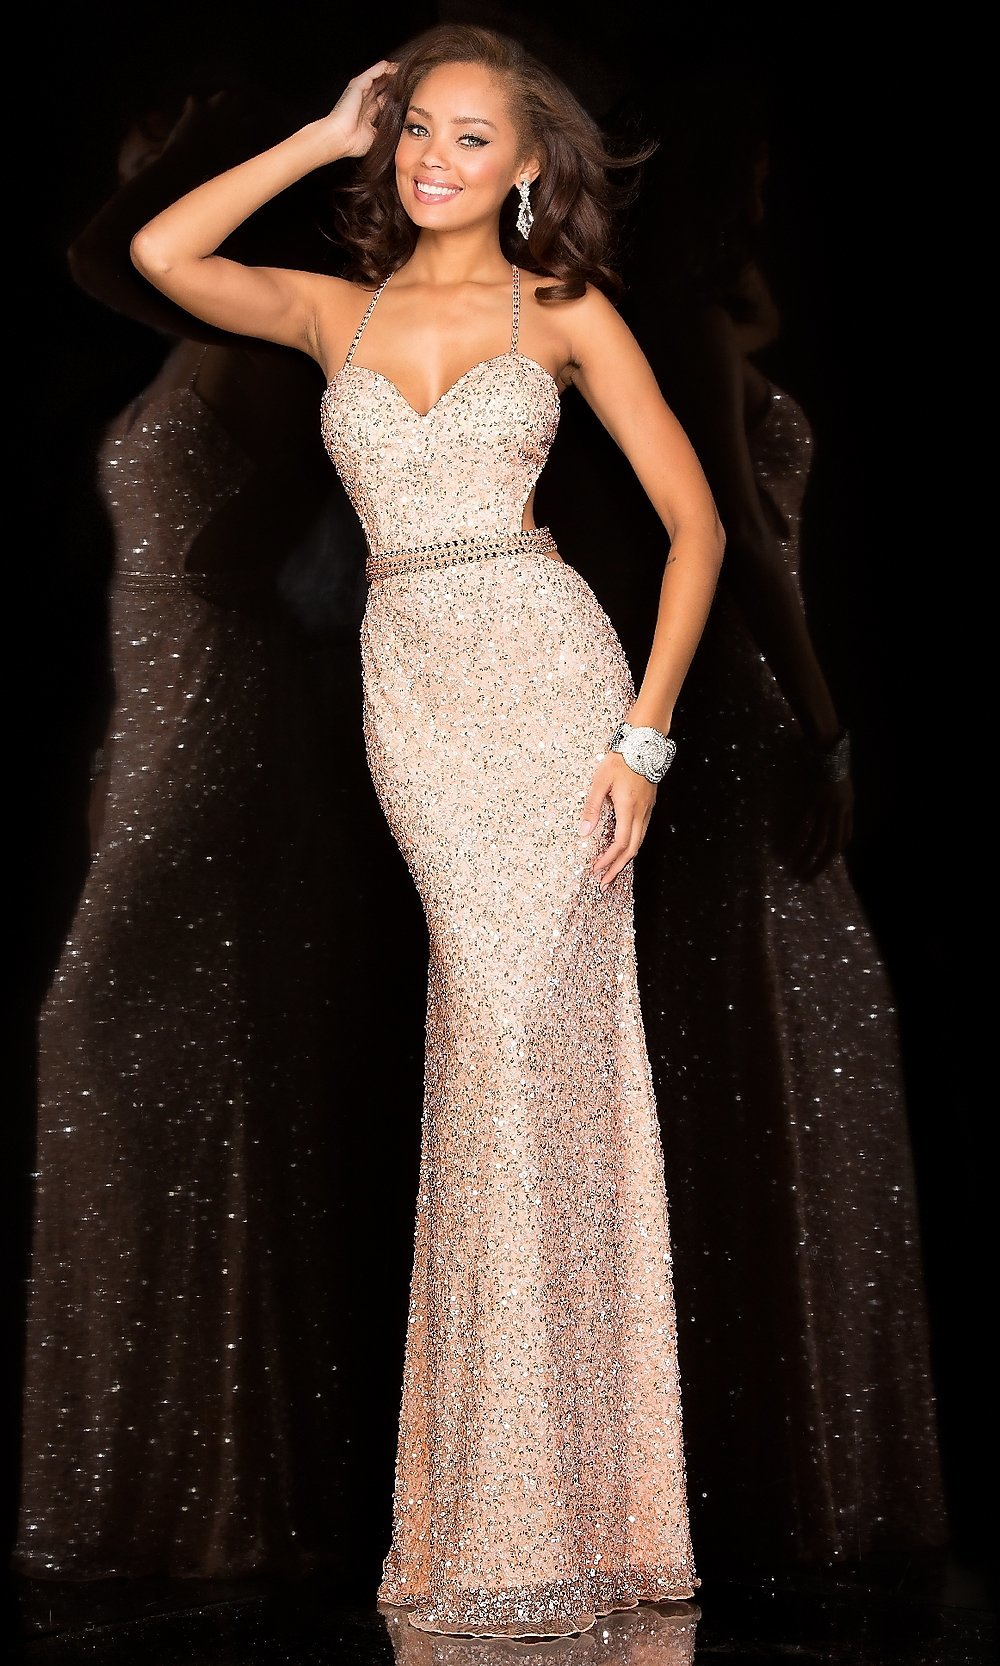 Homecoming Dresses, Formal Prom Dresses, Evening Wear: Floor Length ...